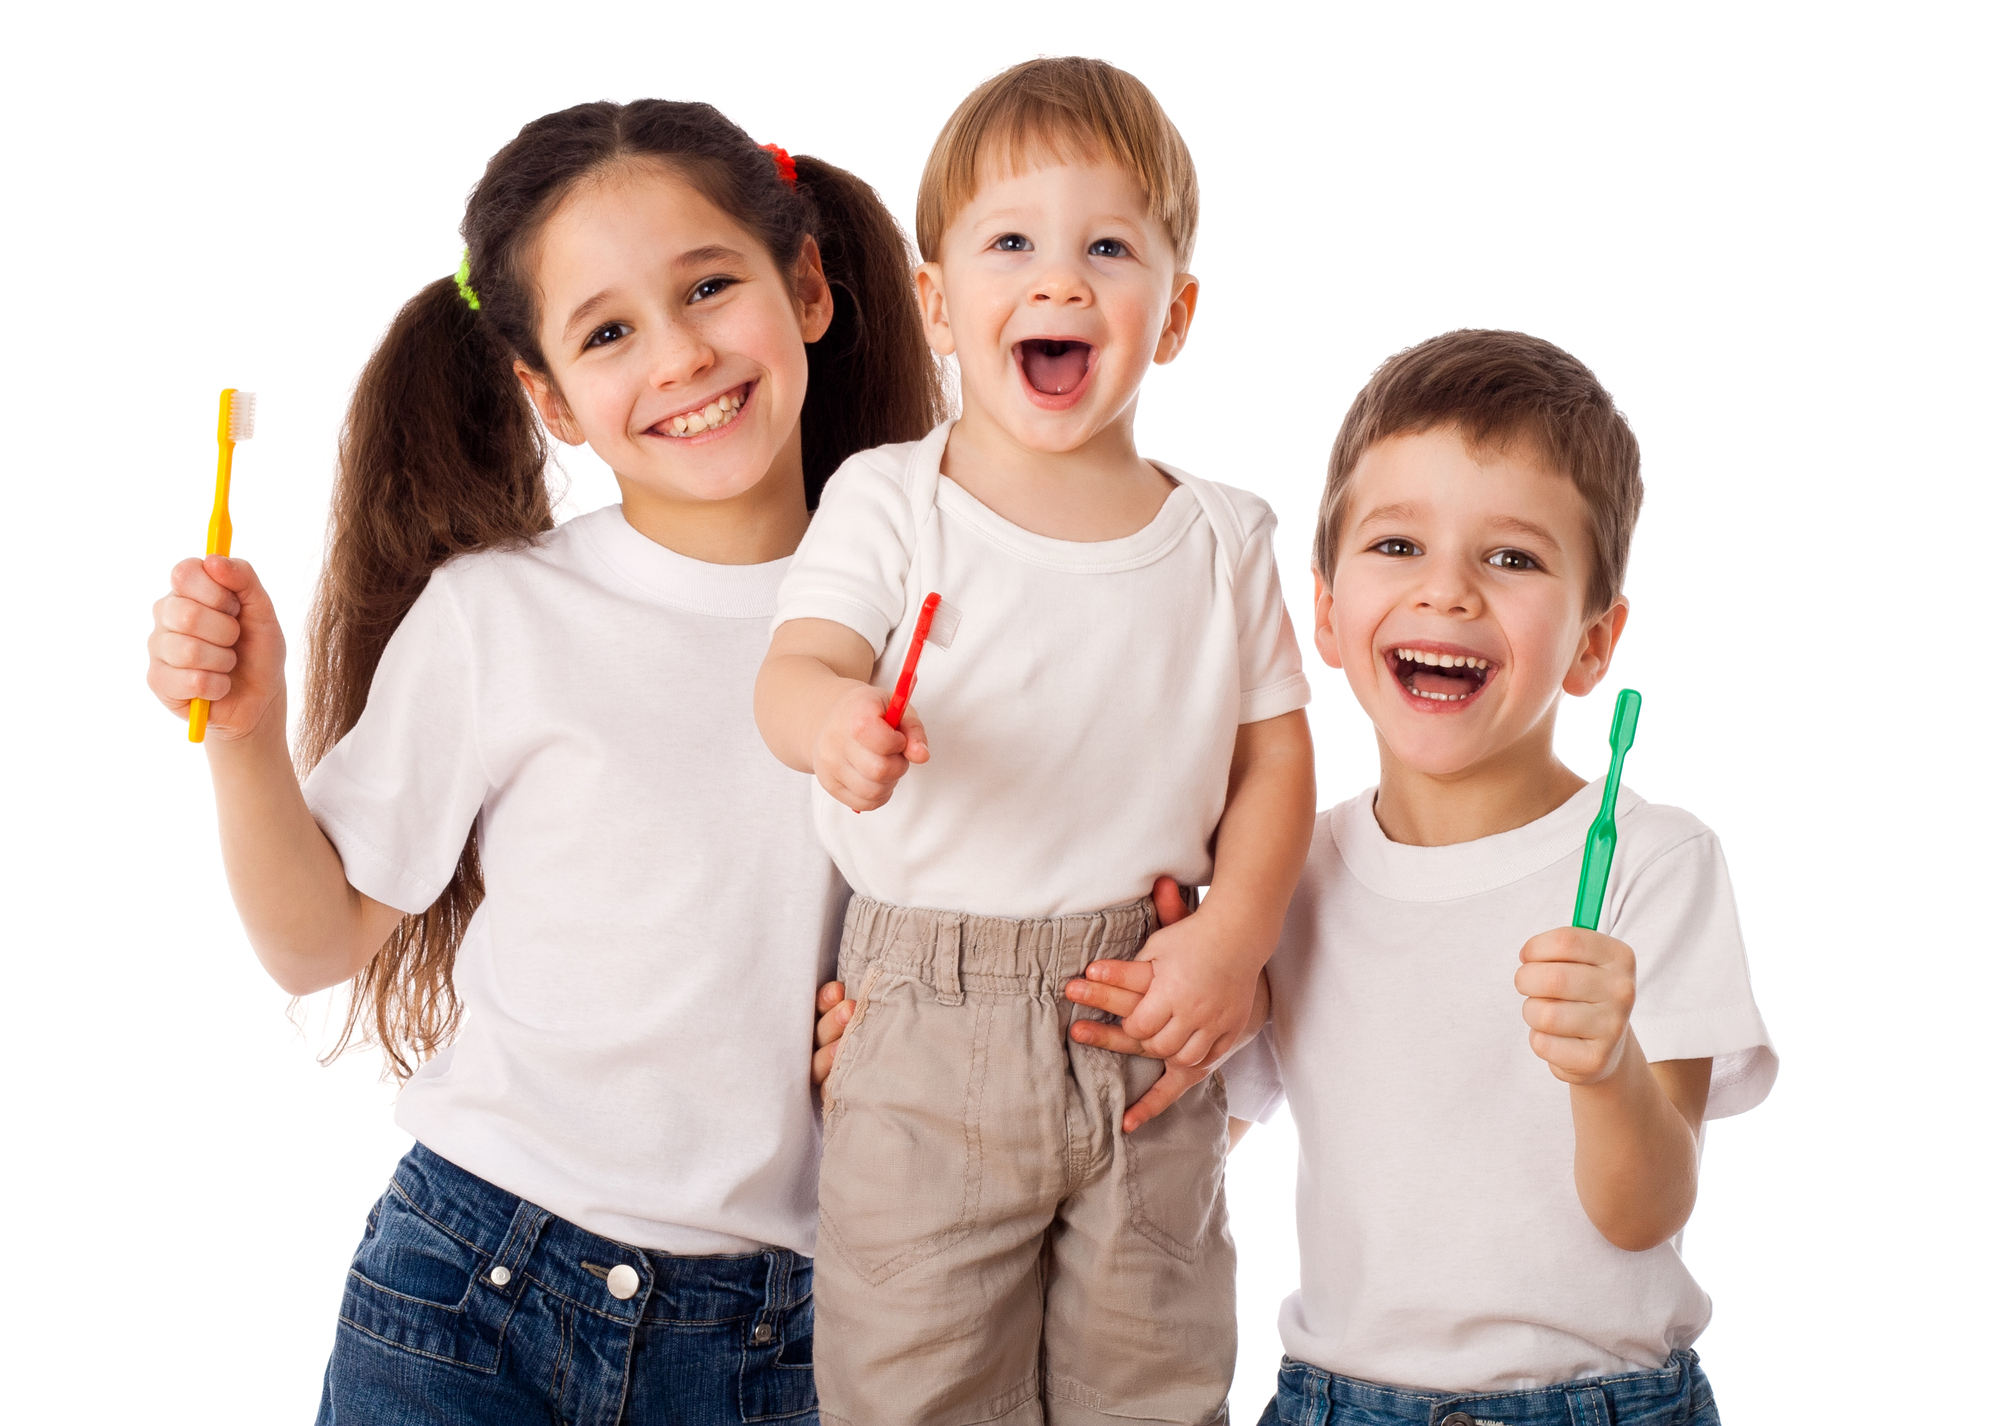 who offers the best family dentistry simpsinville sc?